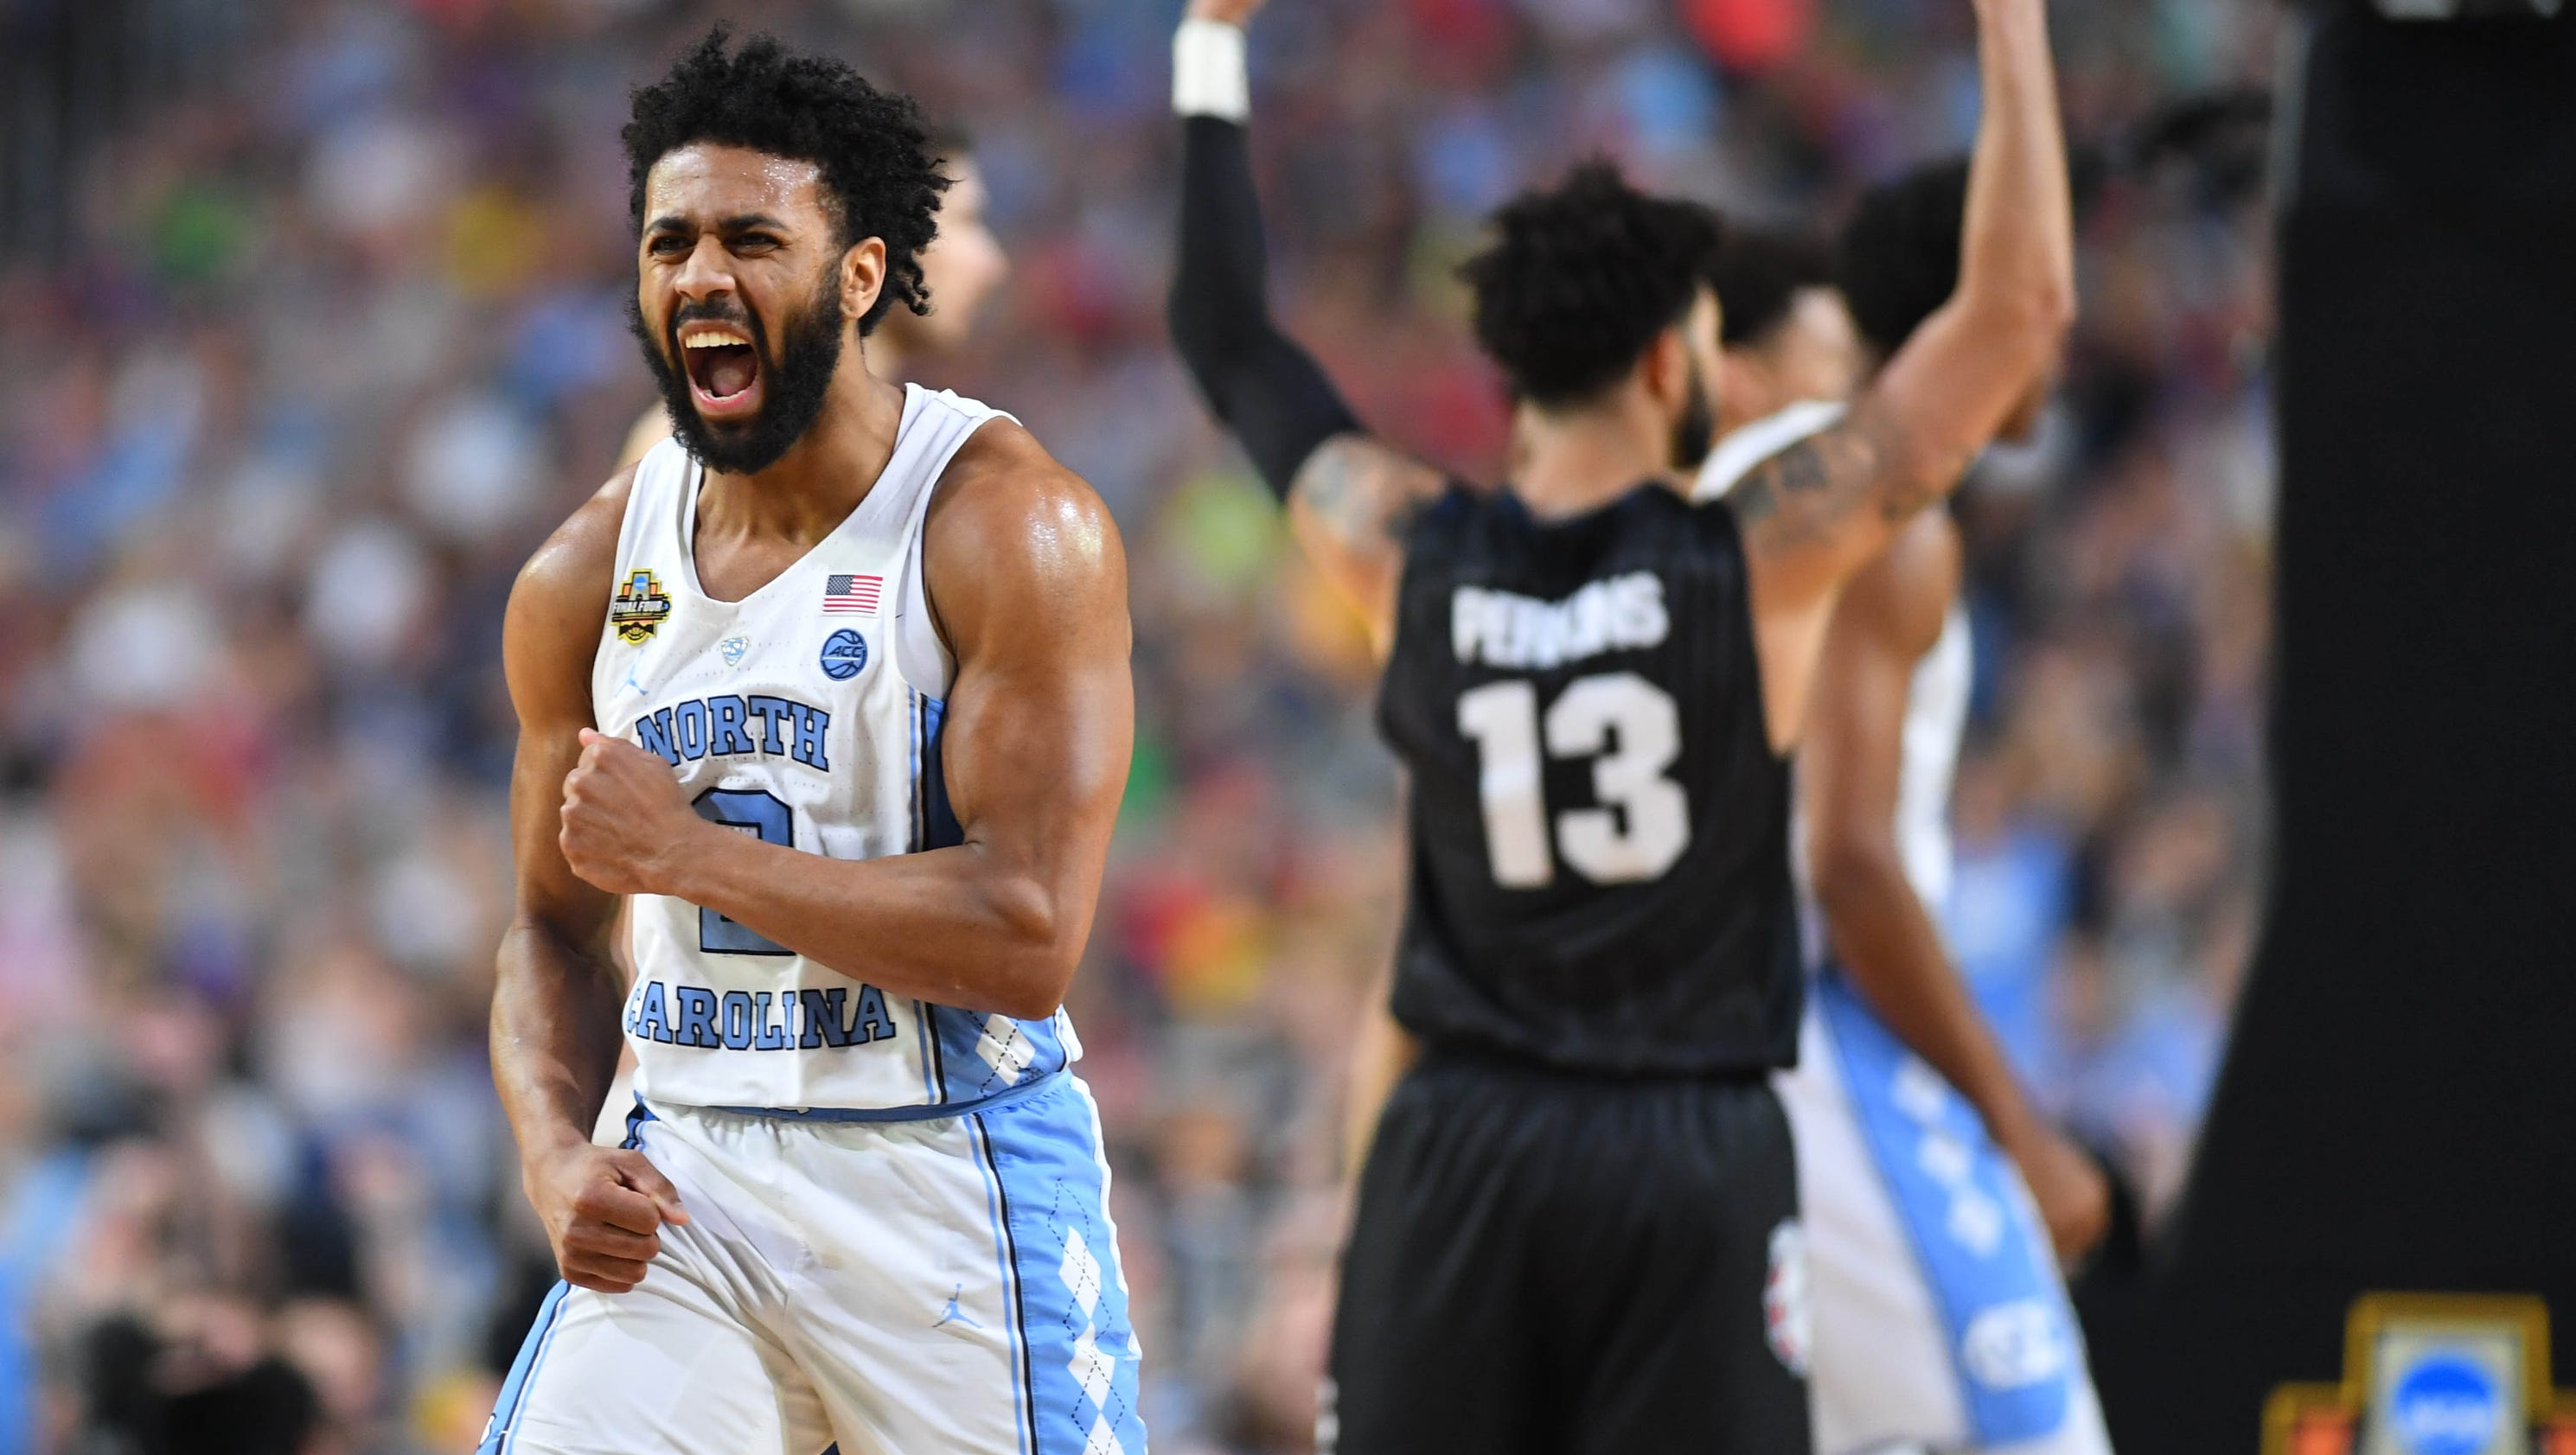 North Carolina defeats Gonzaga for redemption in national championship